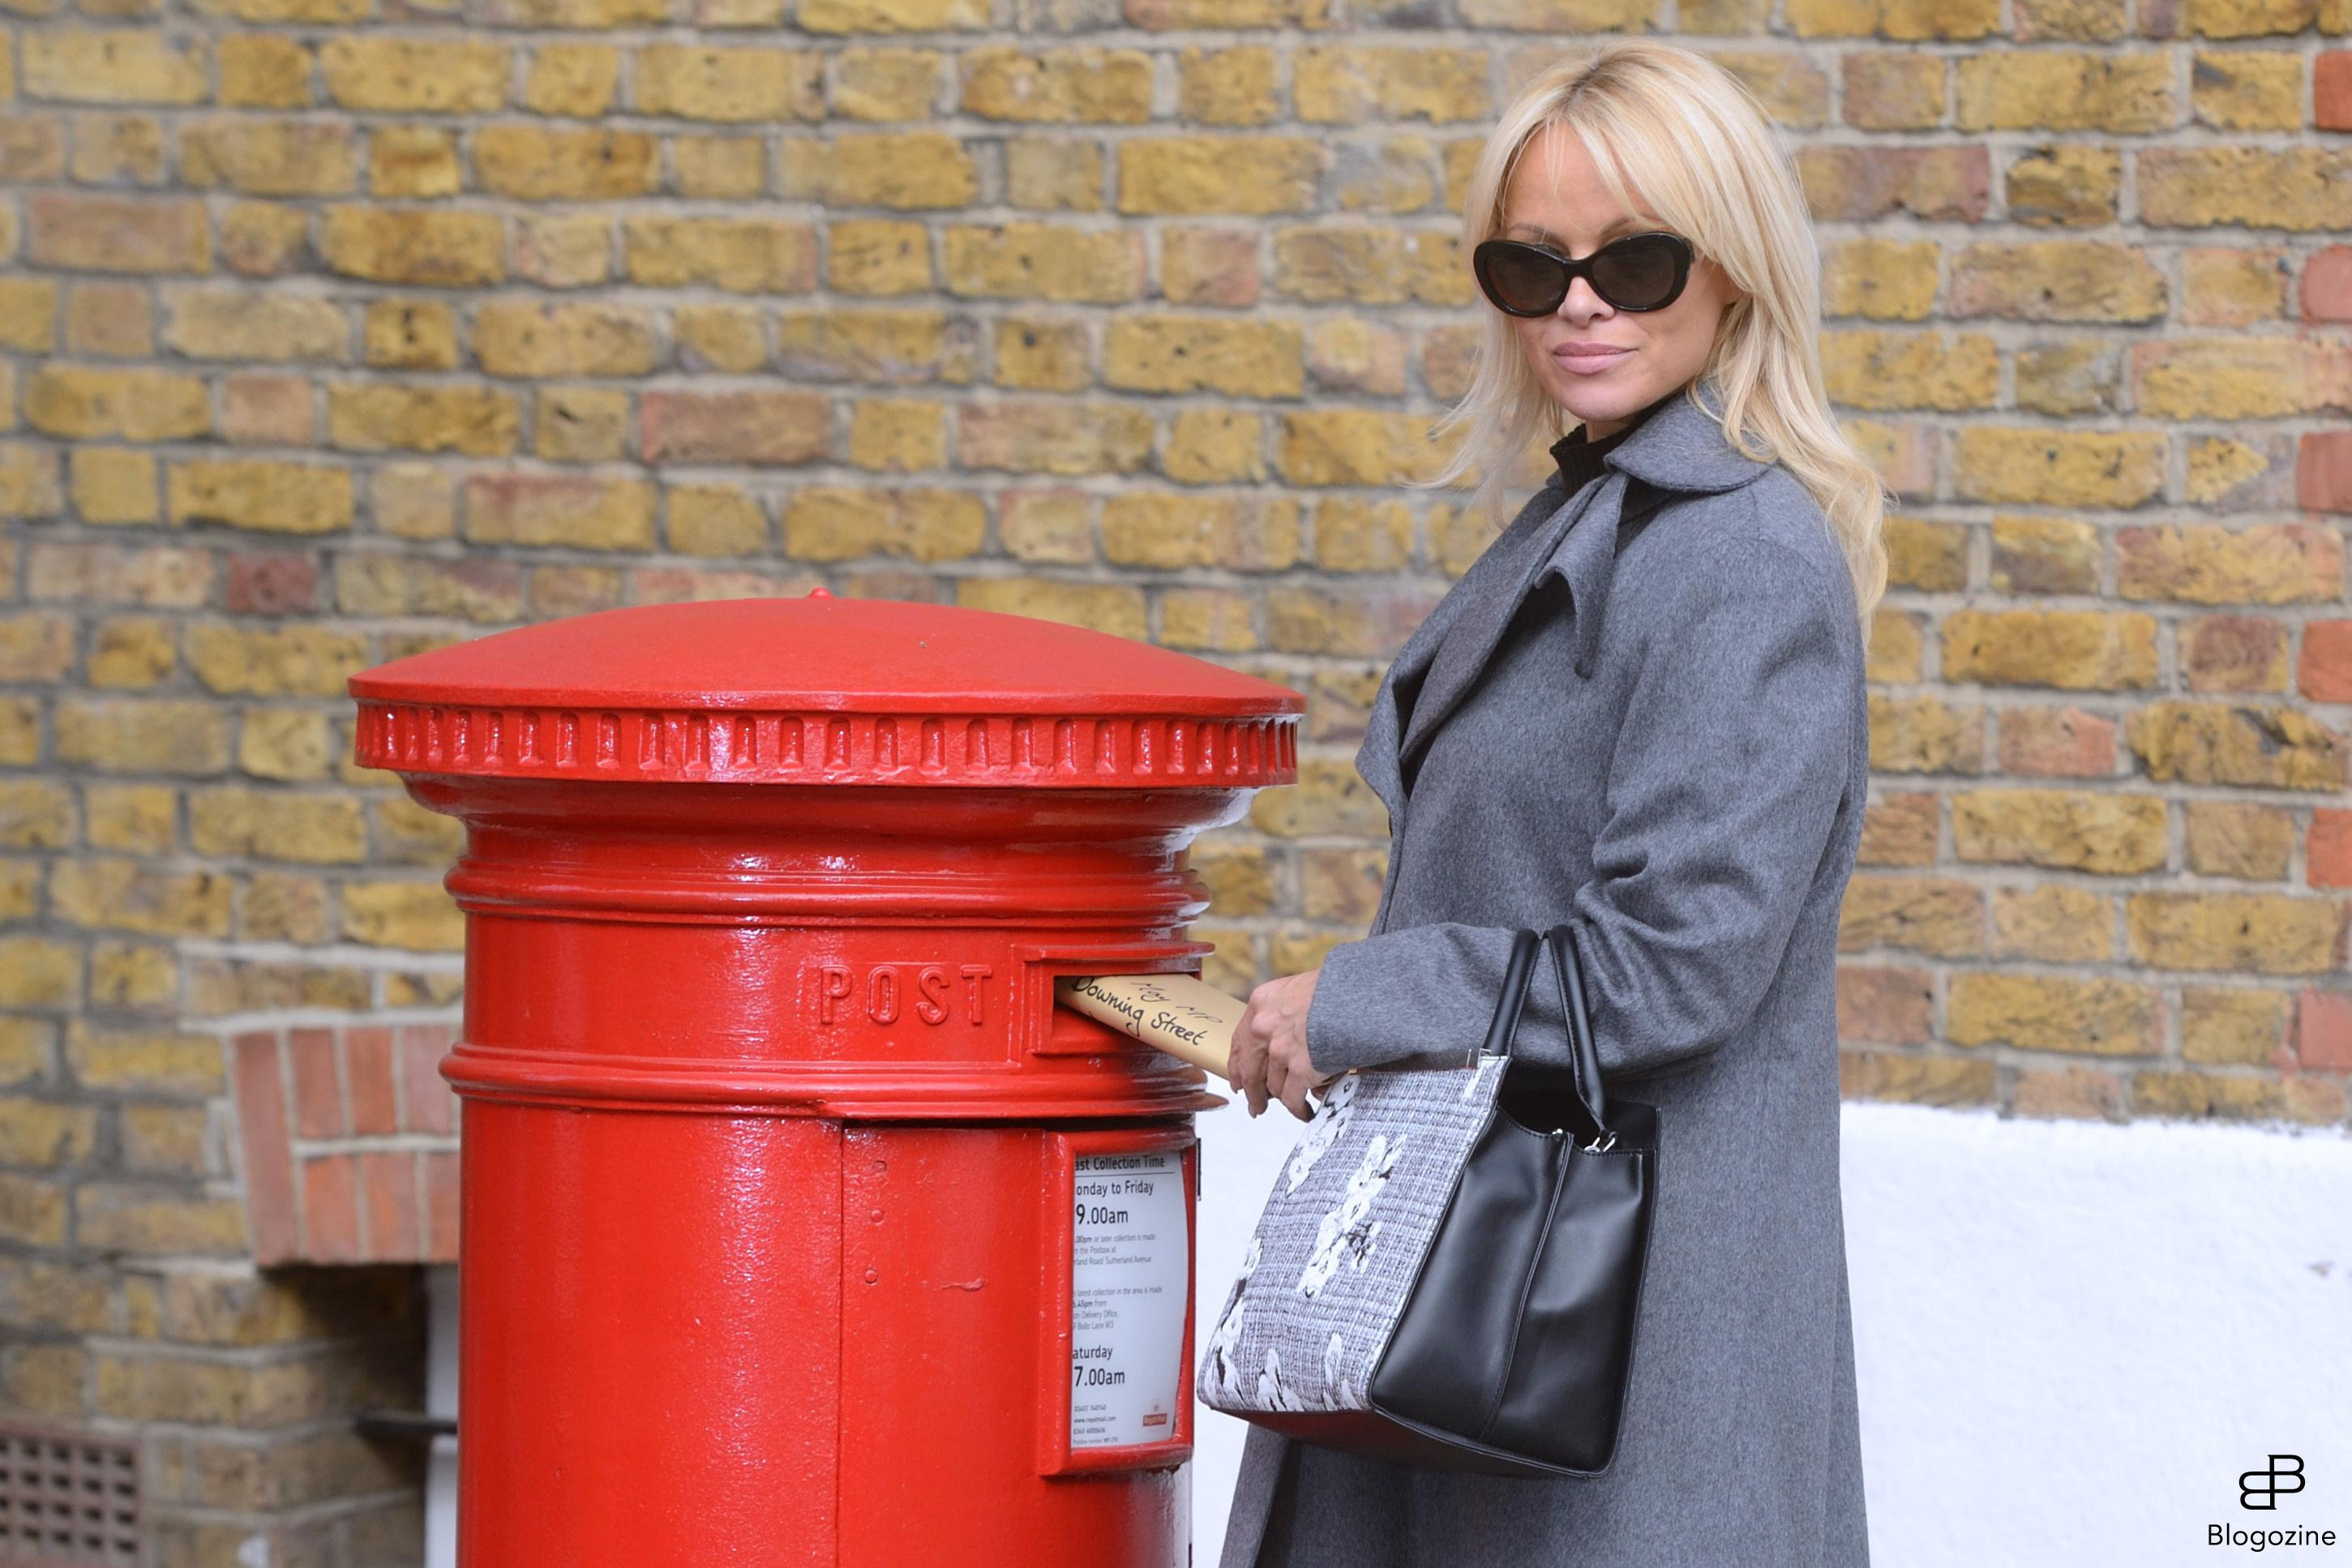 6352489 Pamela Anderson urges Prime Minister Theresa May to ban wild-animal circuses during a PETA Photocall in London, England on October 12, 2016. Photo by Aurore Marechal/ABACAPRESS.COM COPYRIGHT STELLA PICTURES